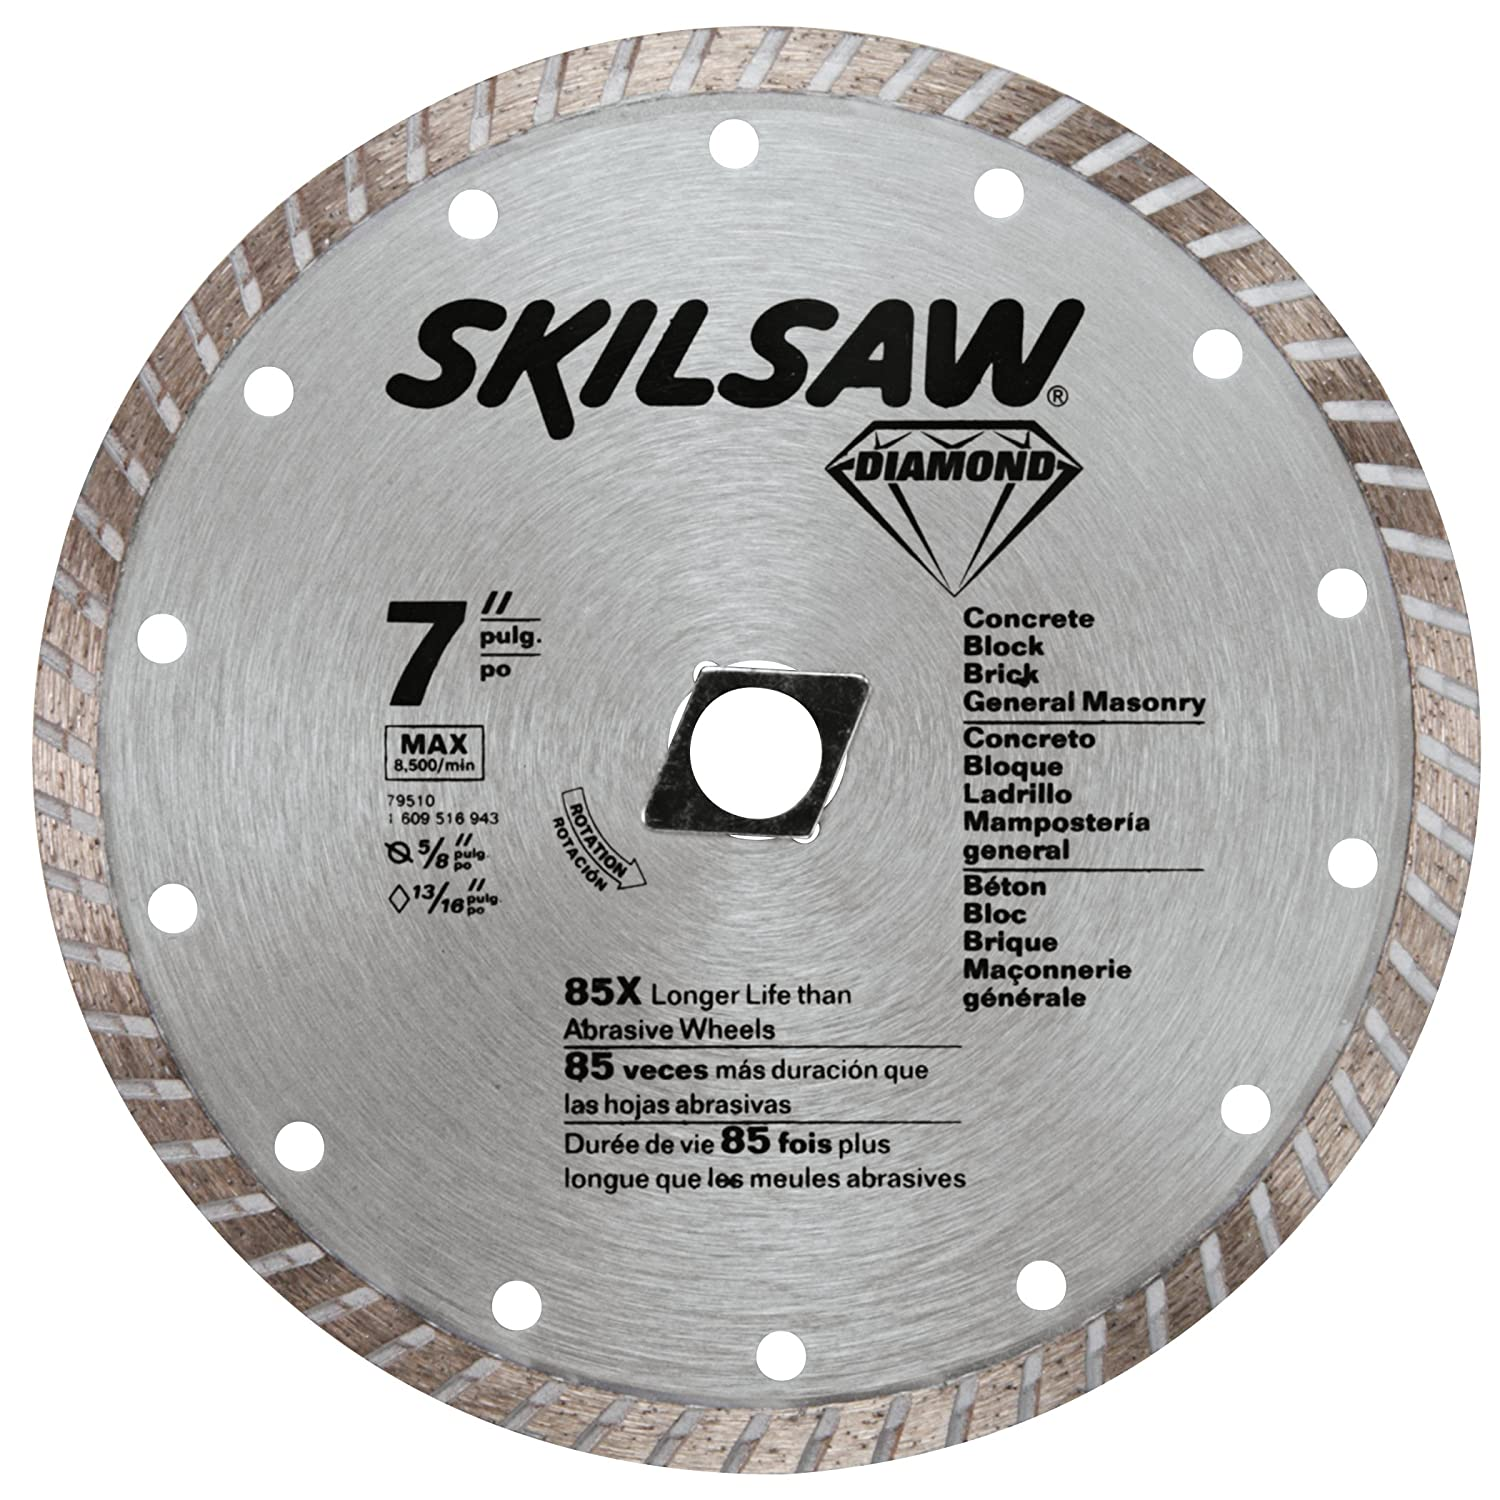 Skil 79510 7 inch turbo rim diamond saw blade with 58 inch or skil 79510 7 inch turbo rim diamond saw blade with 58 inch or diamond knockout arbor for masonry amazon greentooth